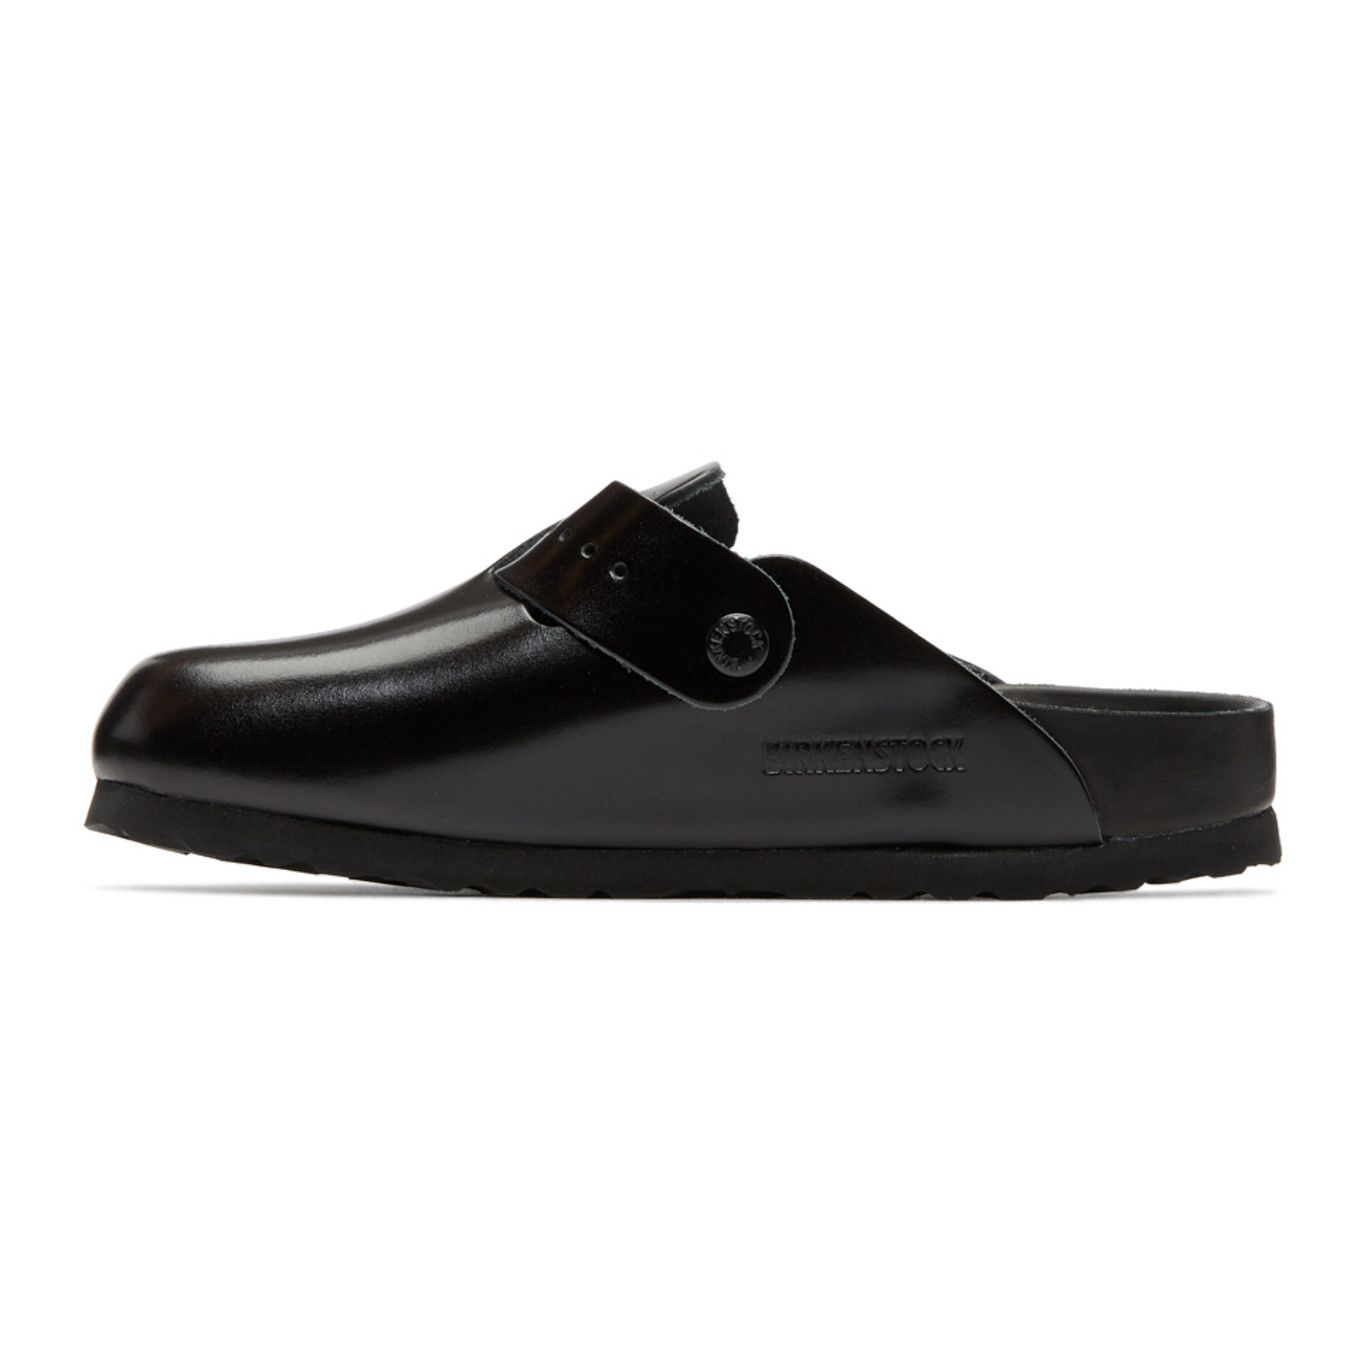 Rick Owens BIRKENSTOCK Edition Leather Boston Slip-On Loafers uxiQ4